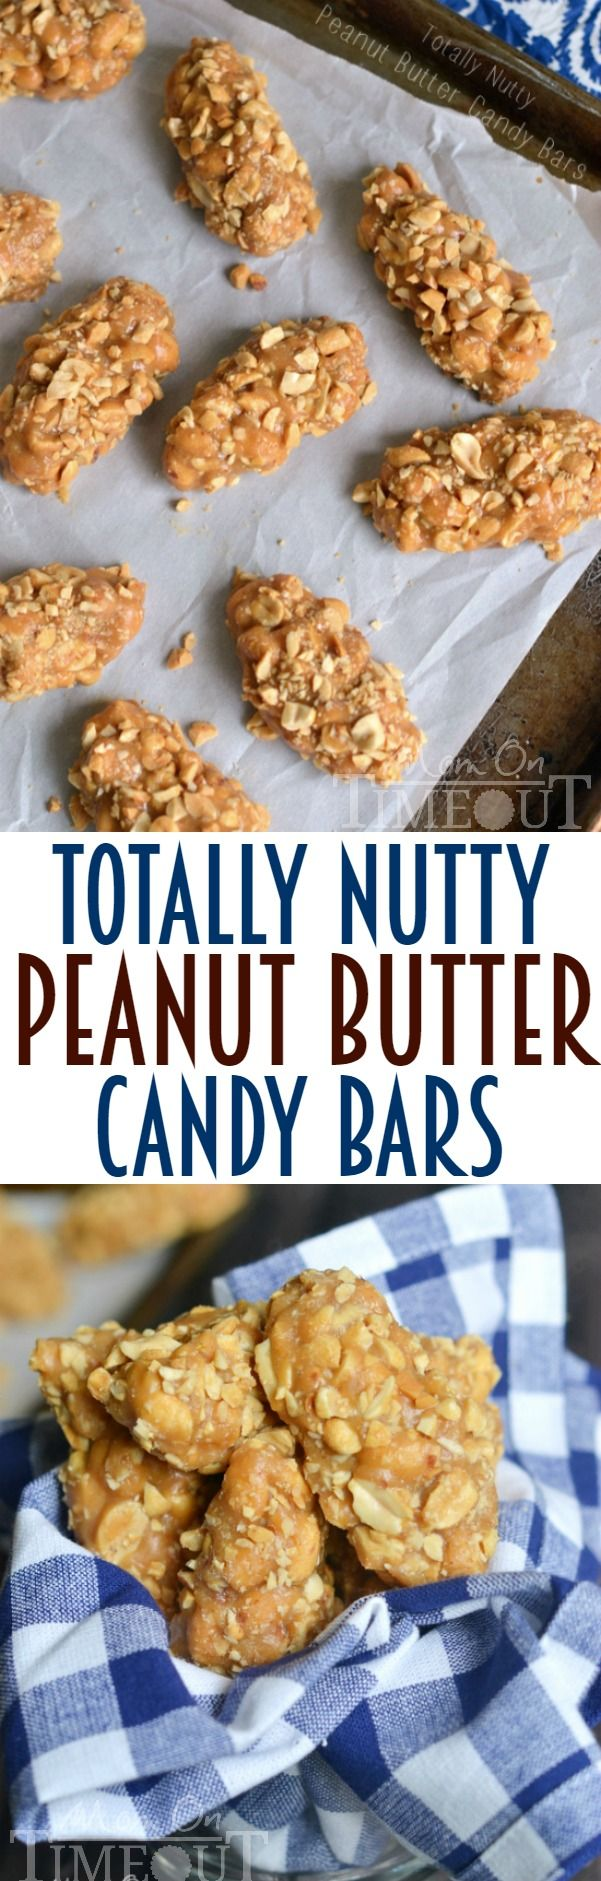 No-Bake, Easy, 4 Ingredient Totally Nutty Peanut Butter Candy Bars | MomOnTimeout.com